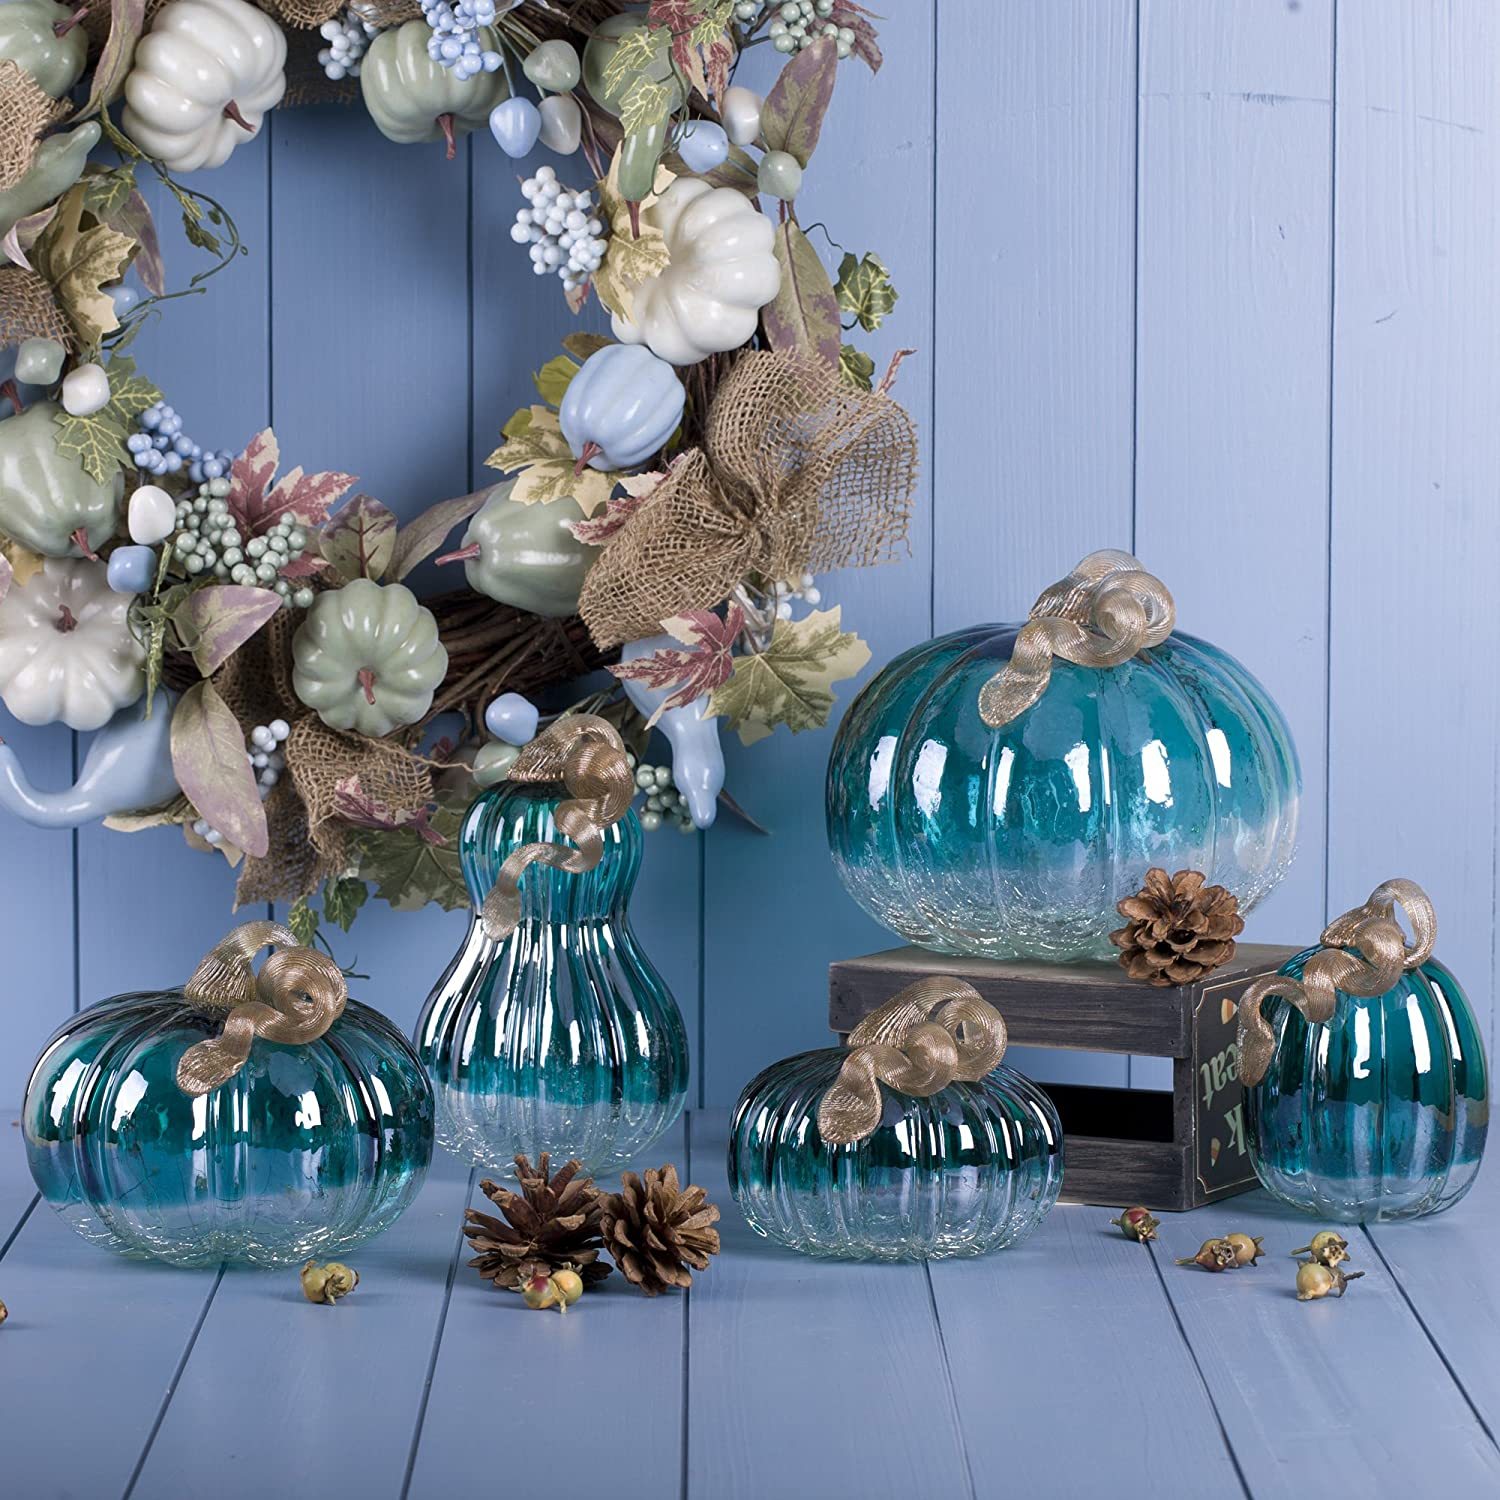 Glitzhome Turquoise Crackle Glass Pumpkin